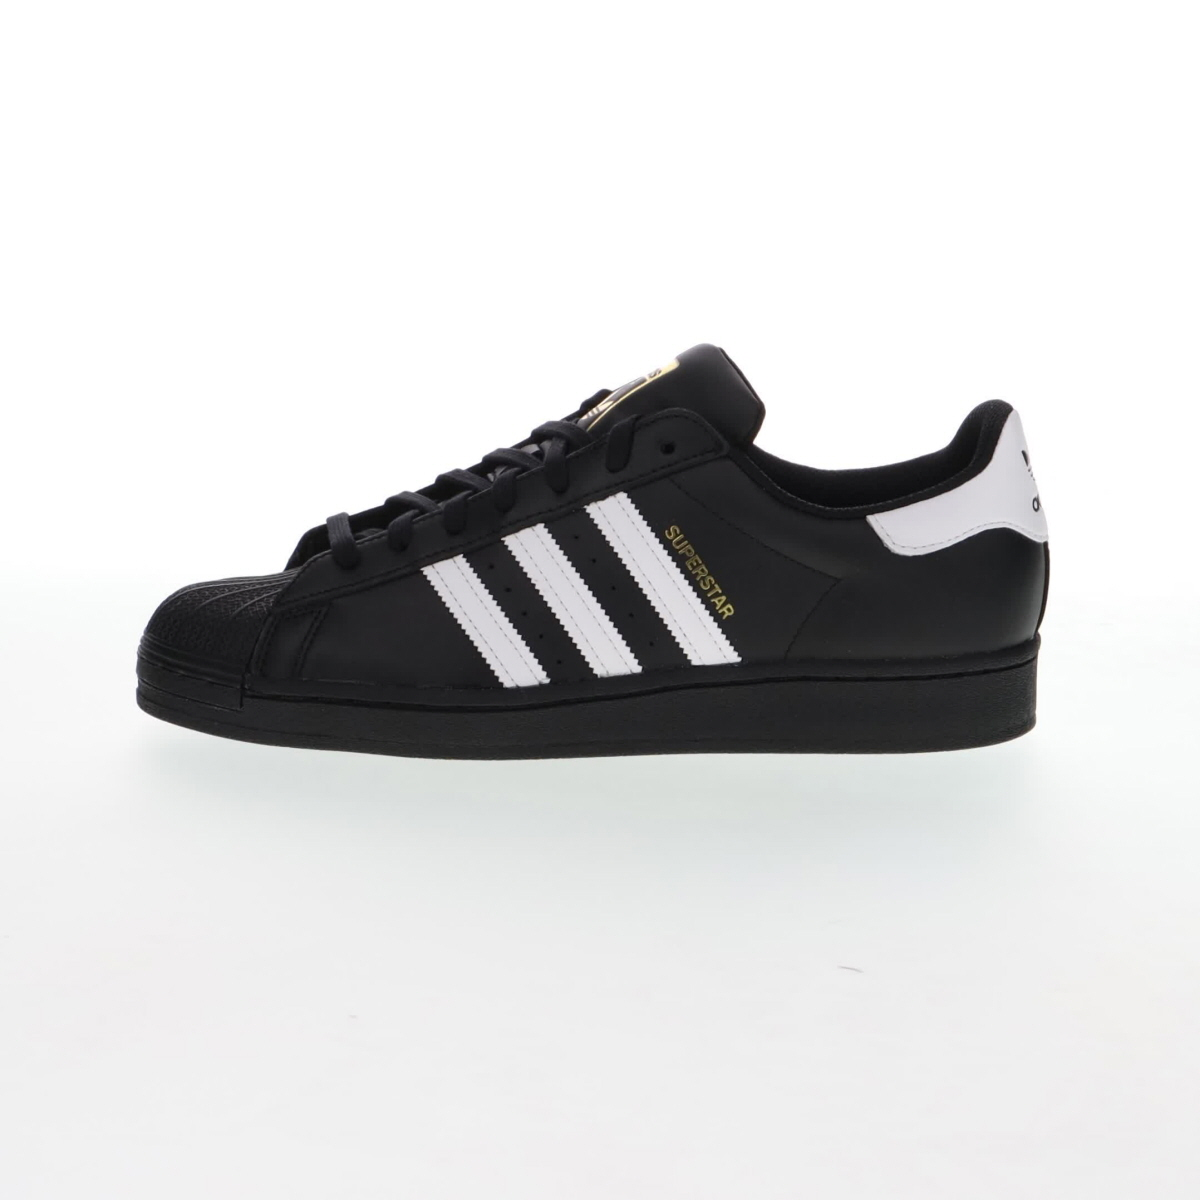 adidas i 5923 size shoes for sale